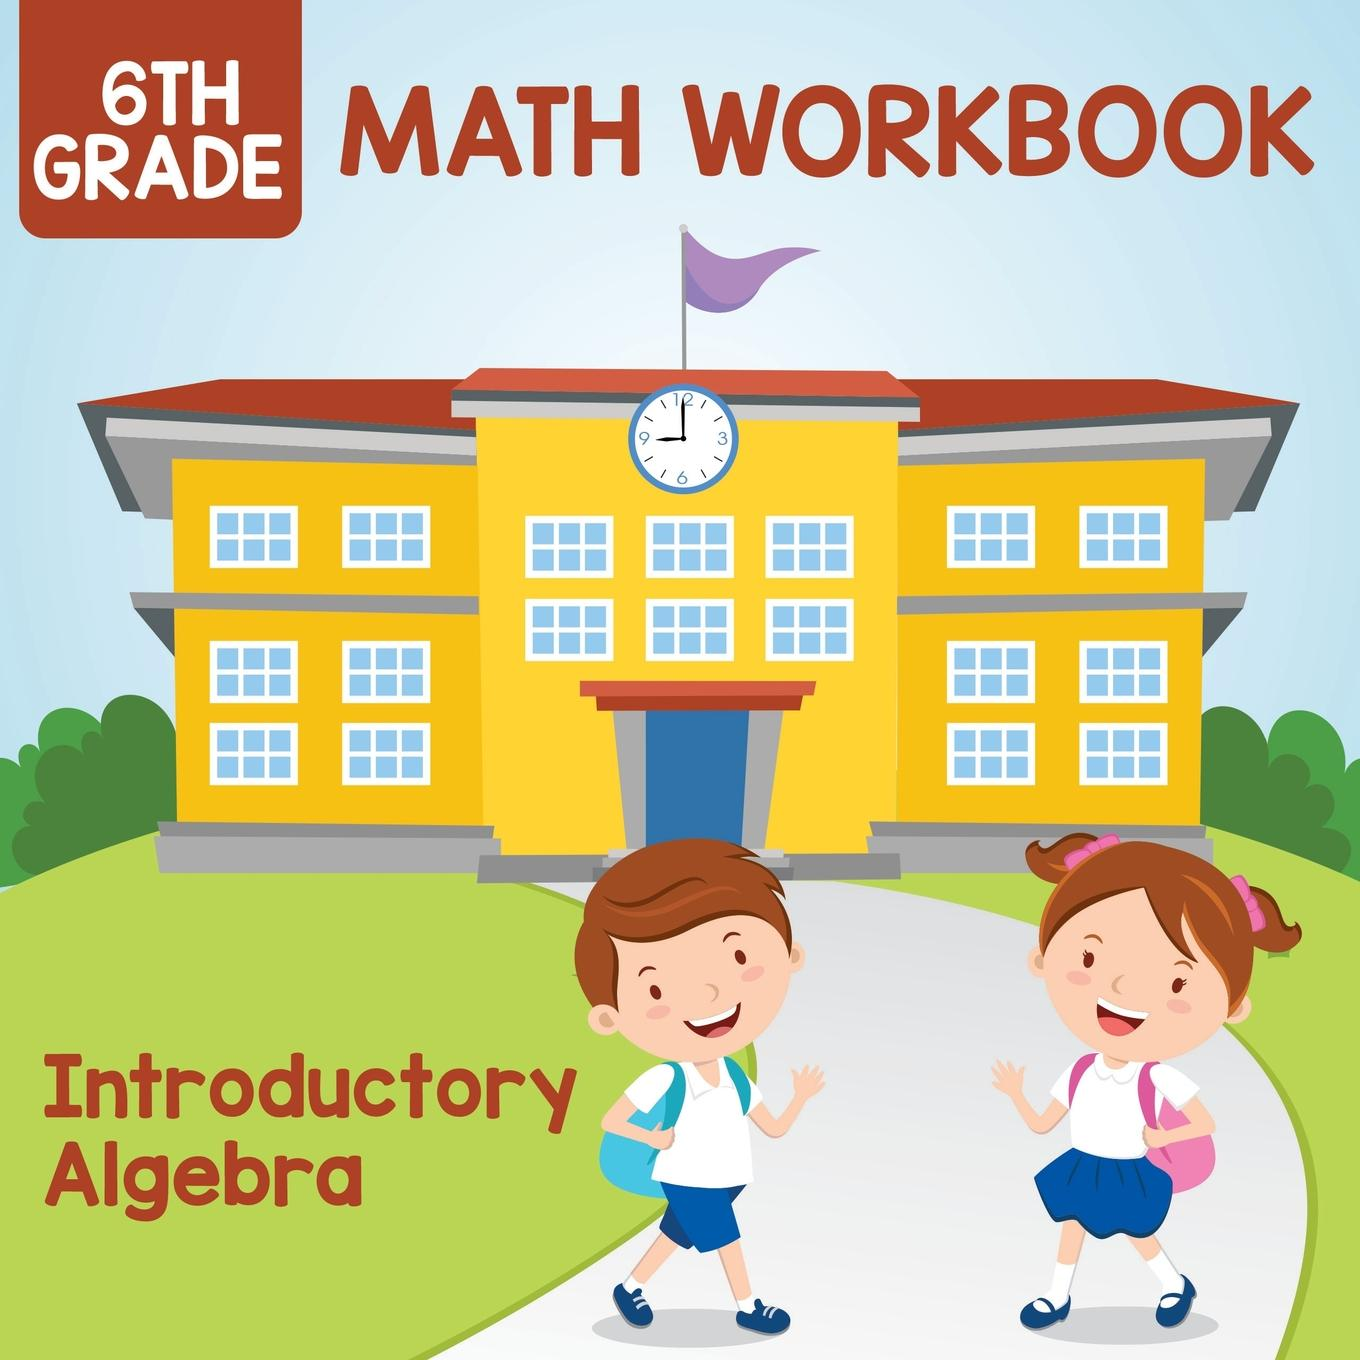 6th Grade Math Workbook Introductory Algebra Paperback